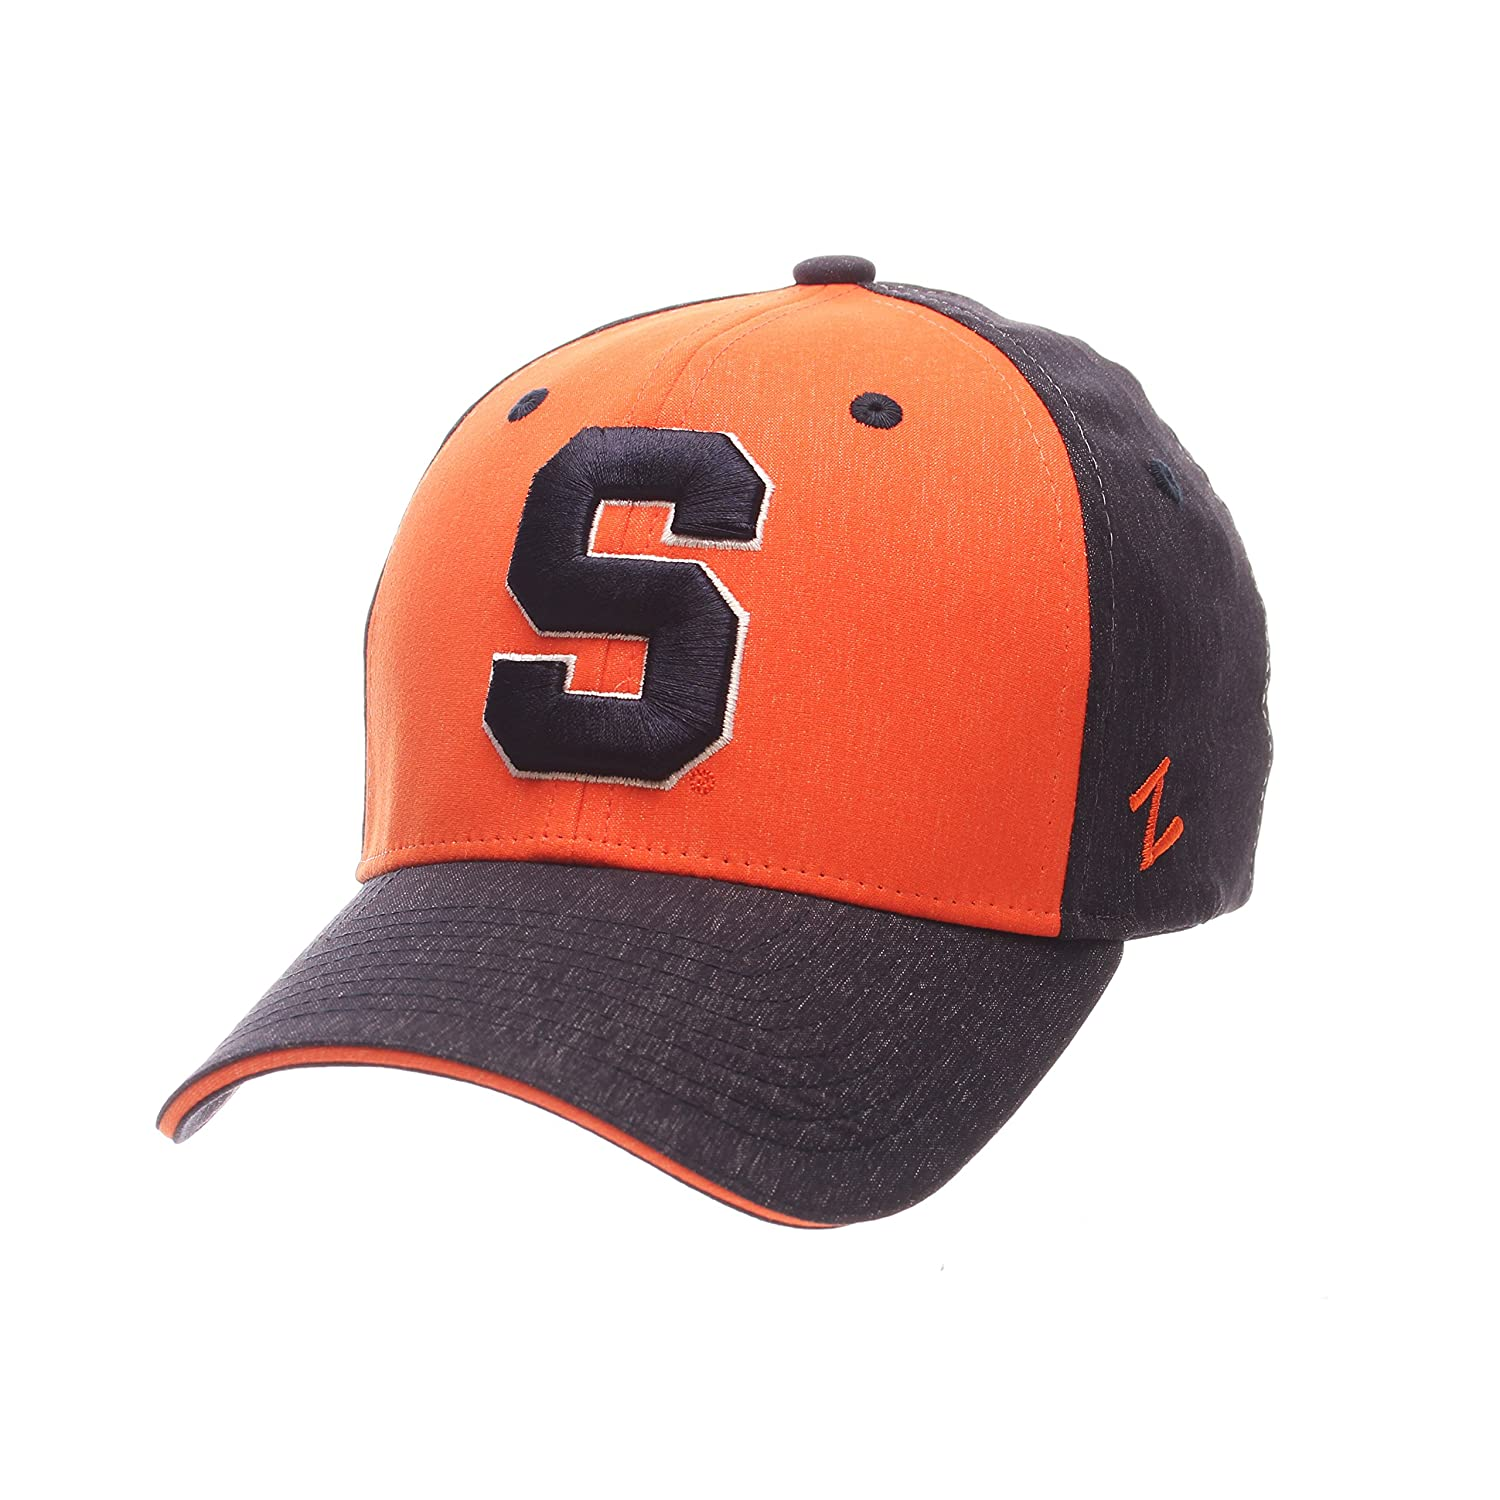 (Syracuse Orange, Youth, Heathered Team Color) - Youth Challenger Cap   B0714QQ4TR